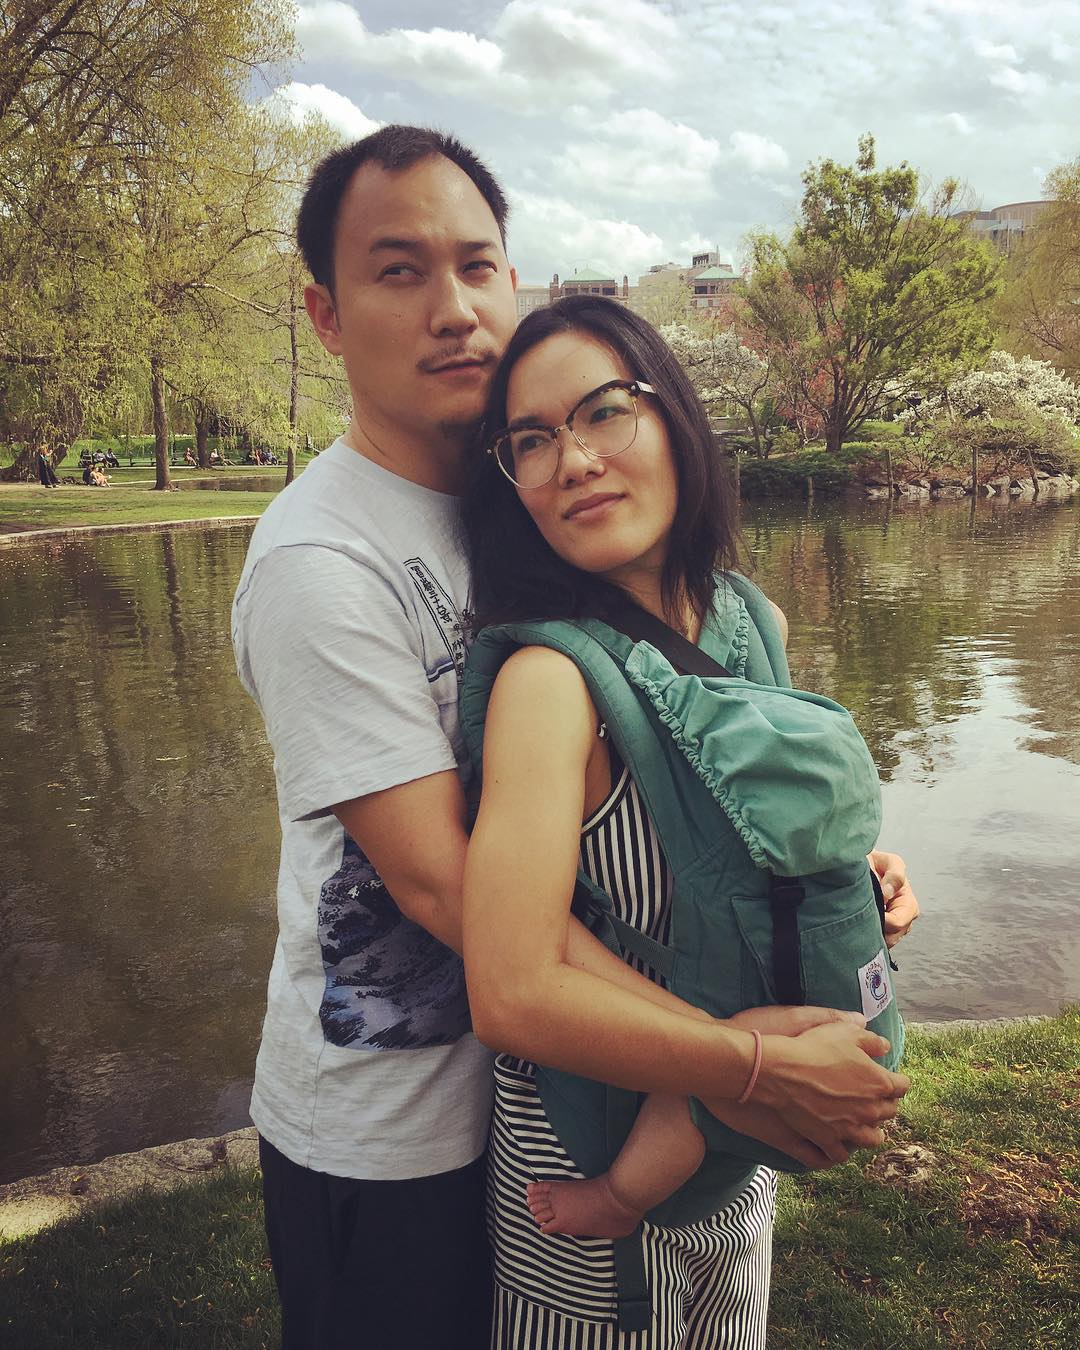 Justin Hakuta and Ali Wong posing by the riverside